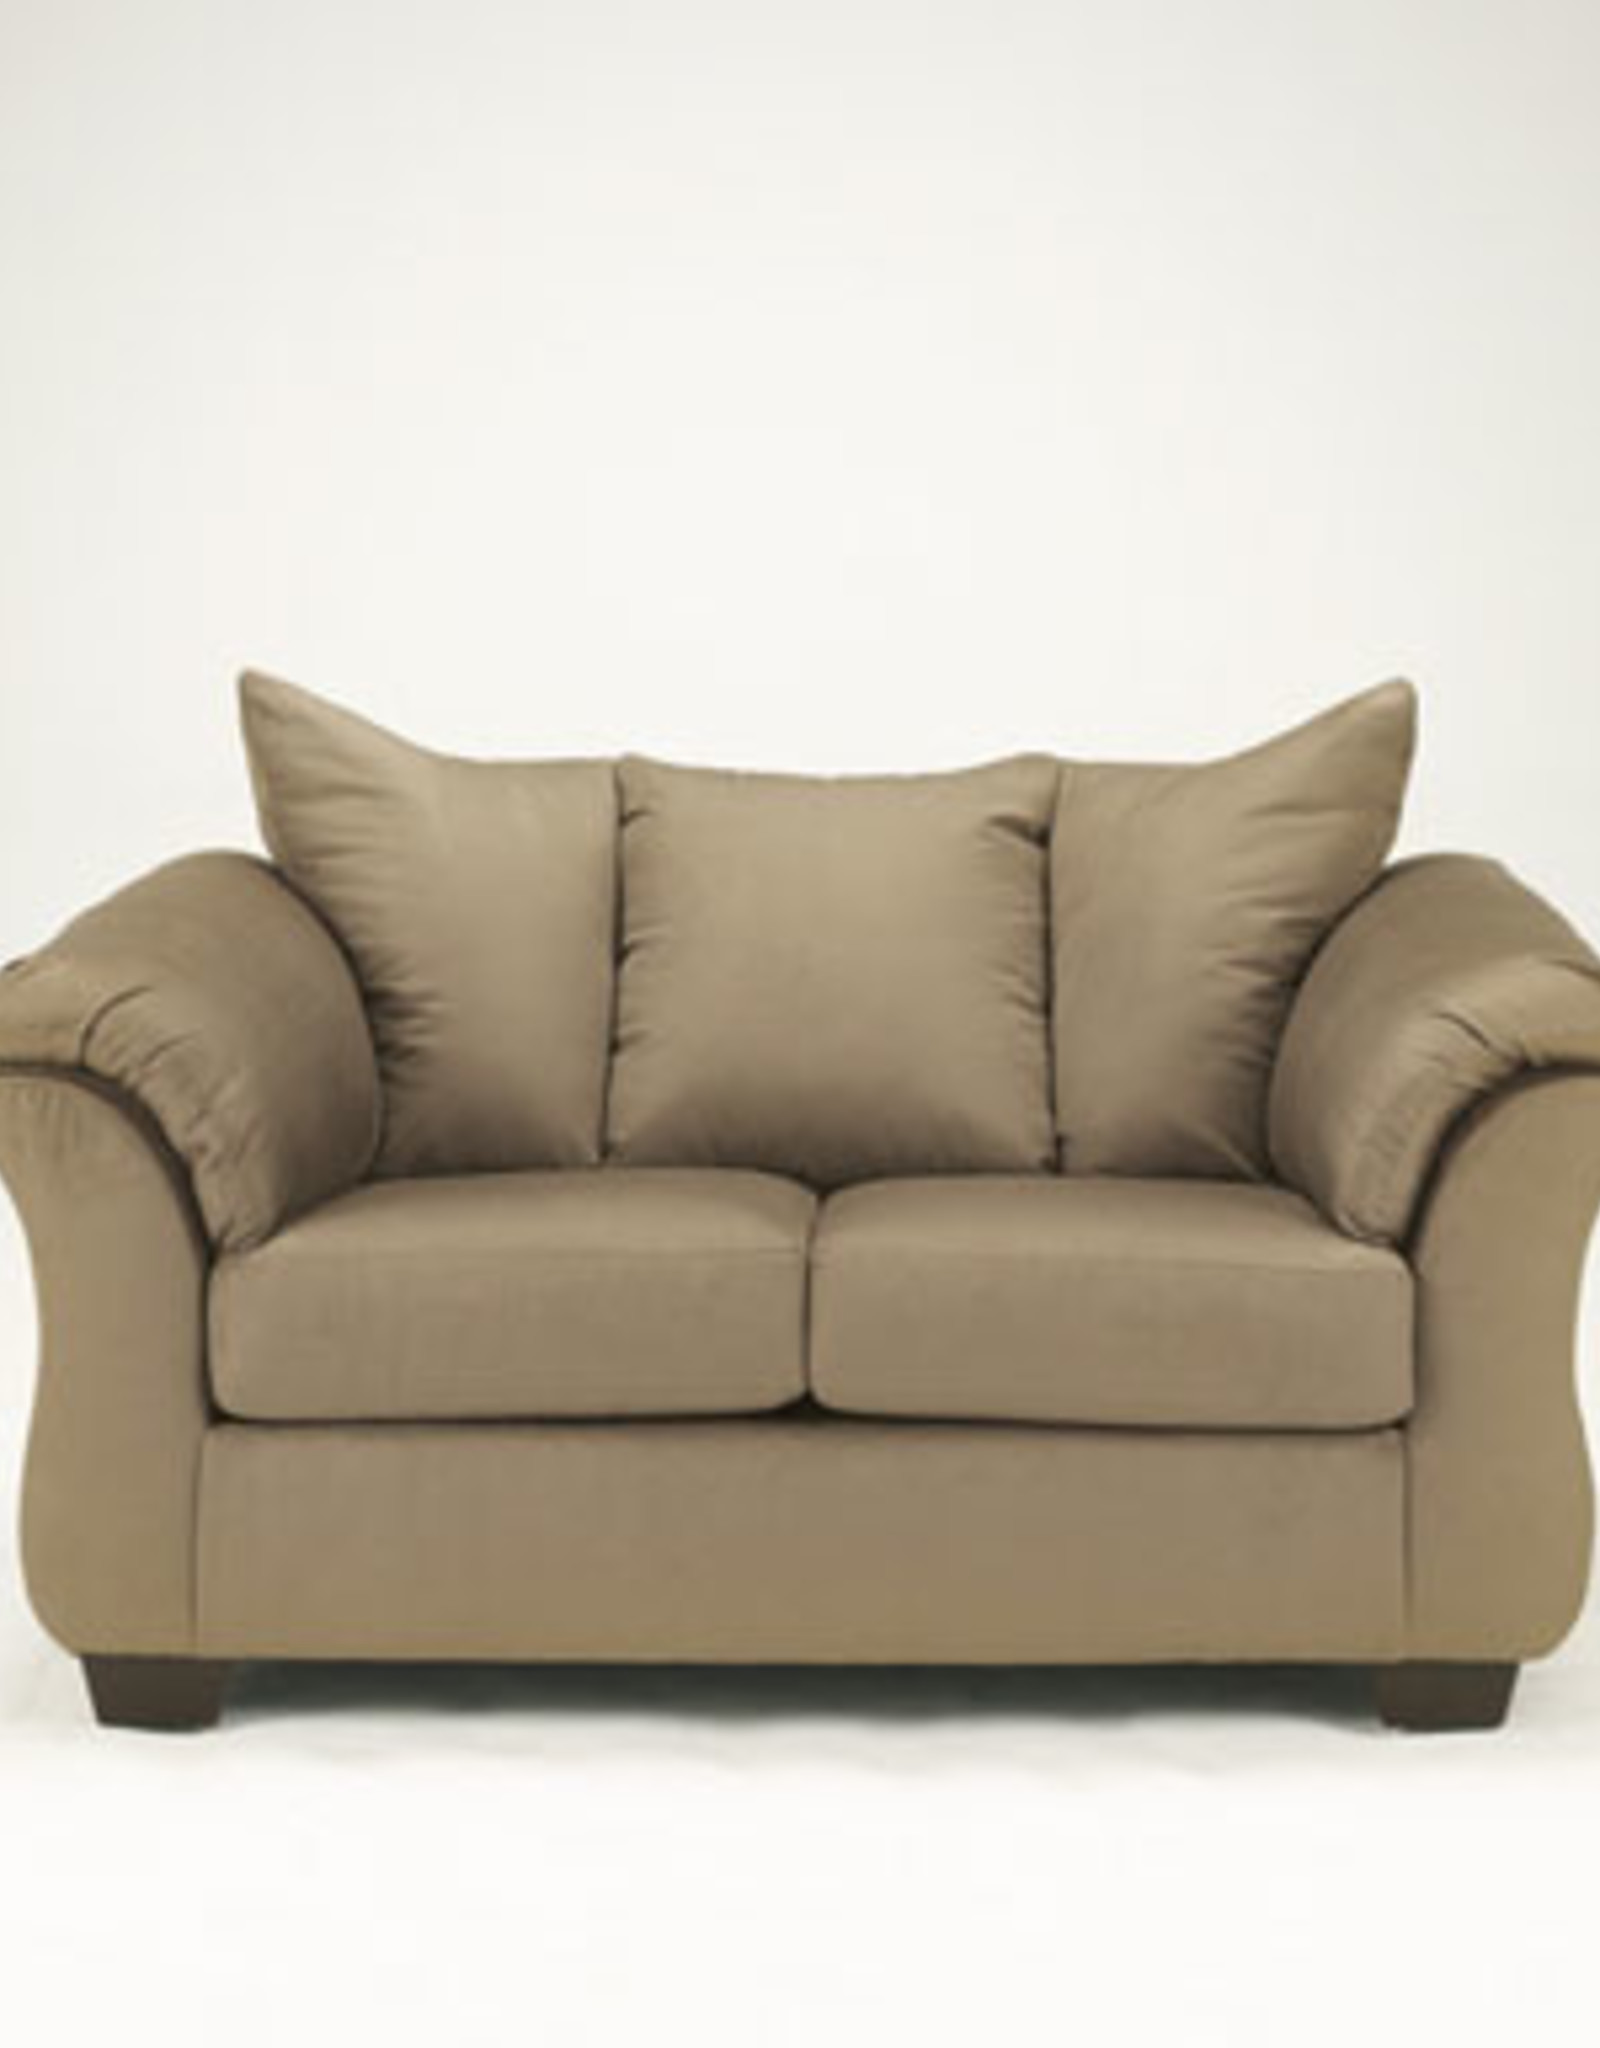 Darcy Loveseat (Mocha) Displayed in Showroom in Salsa